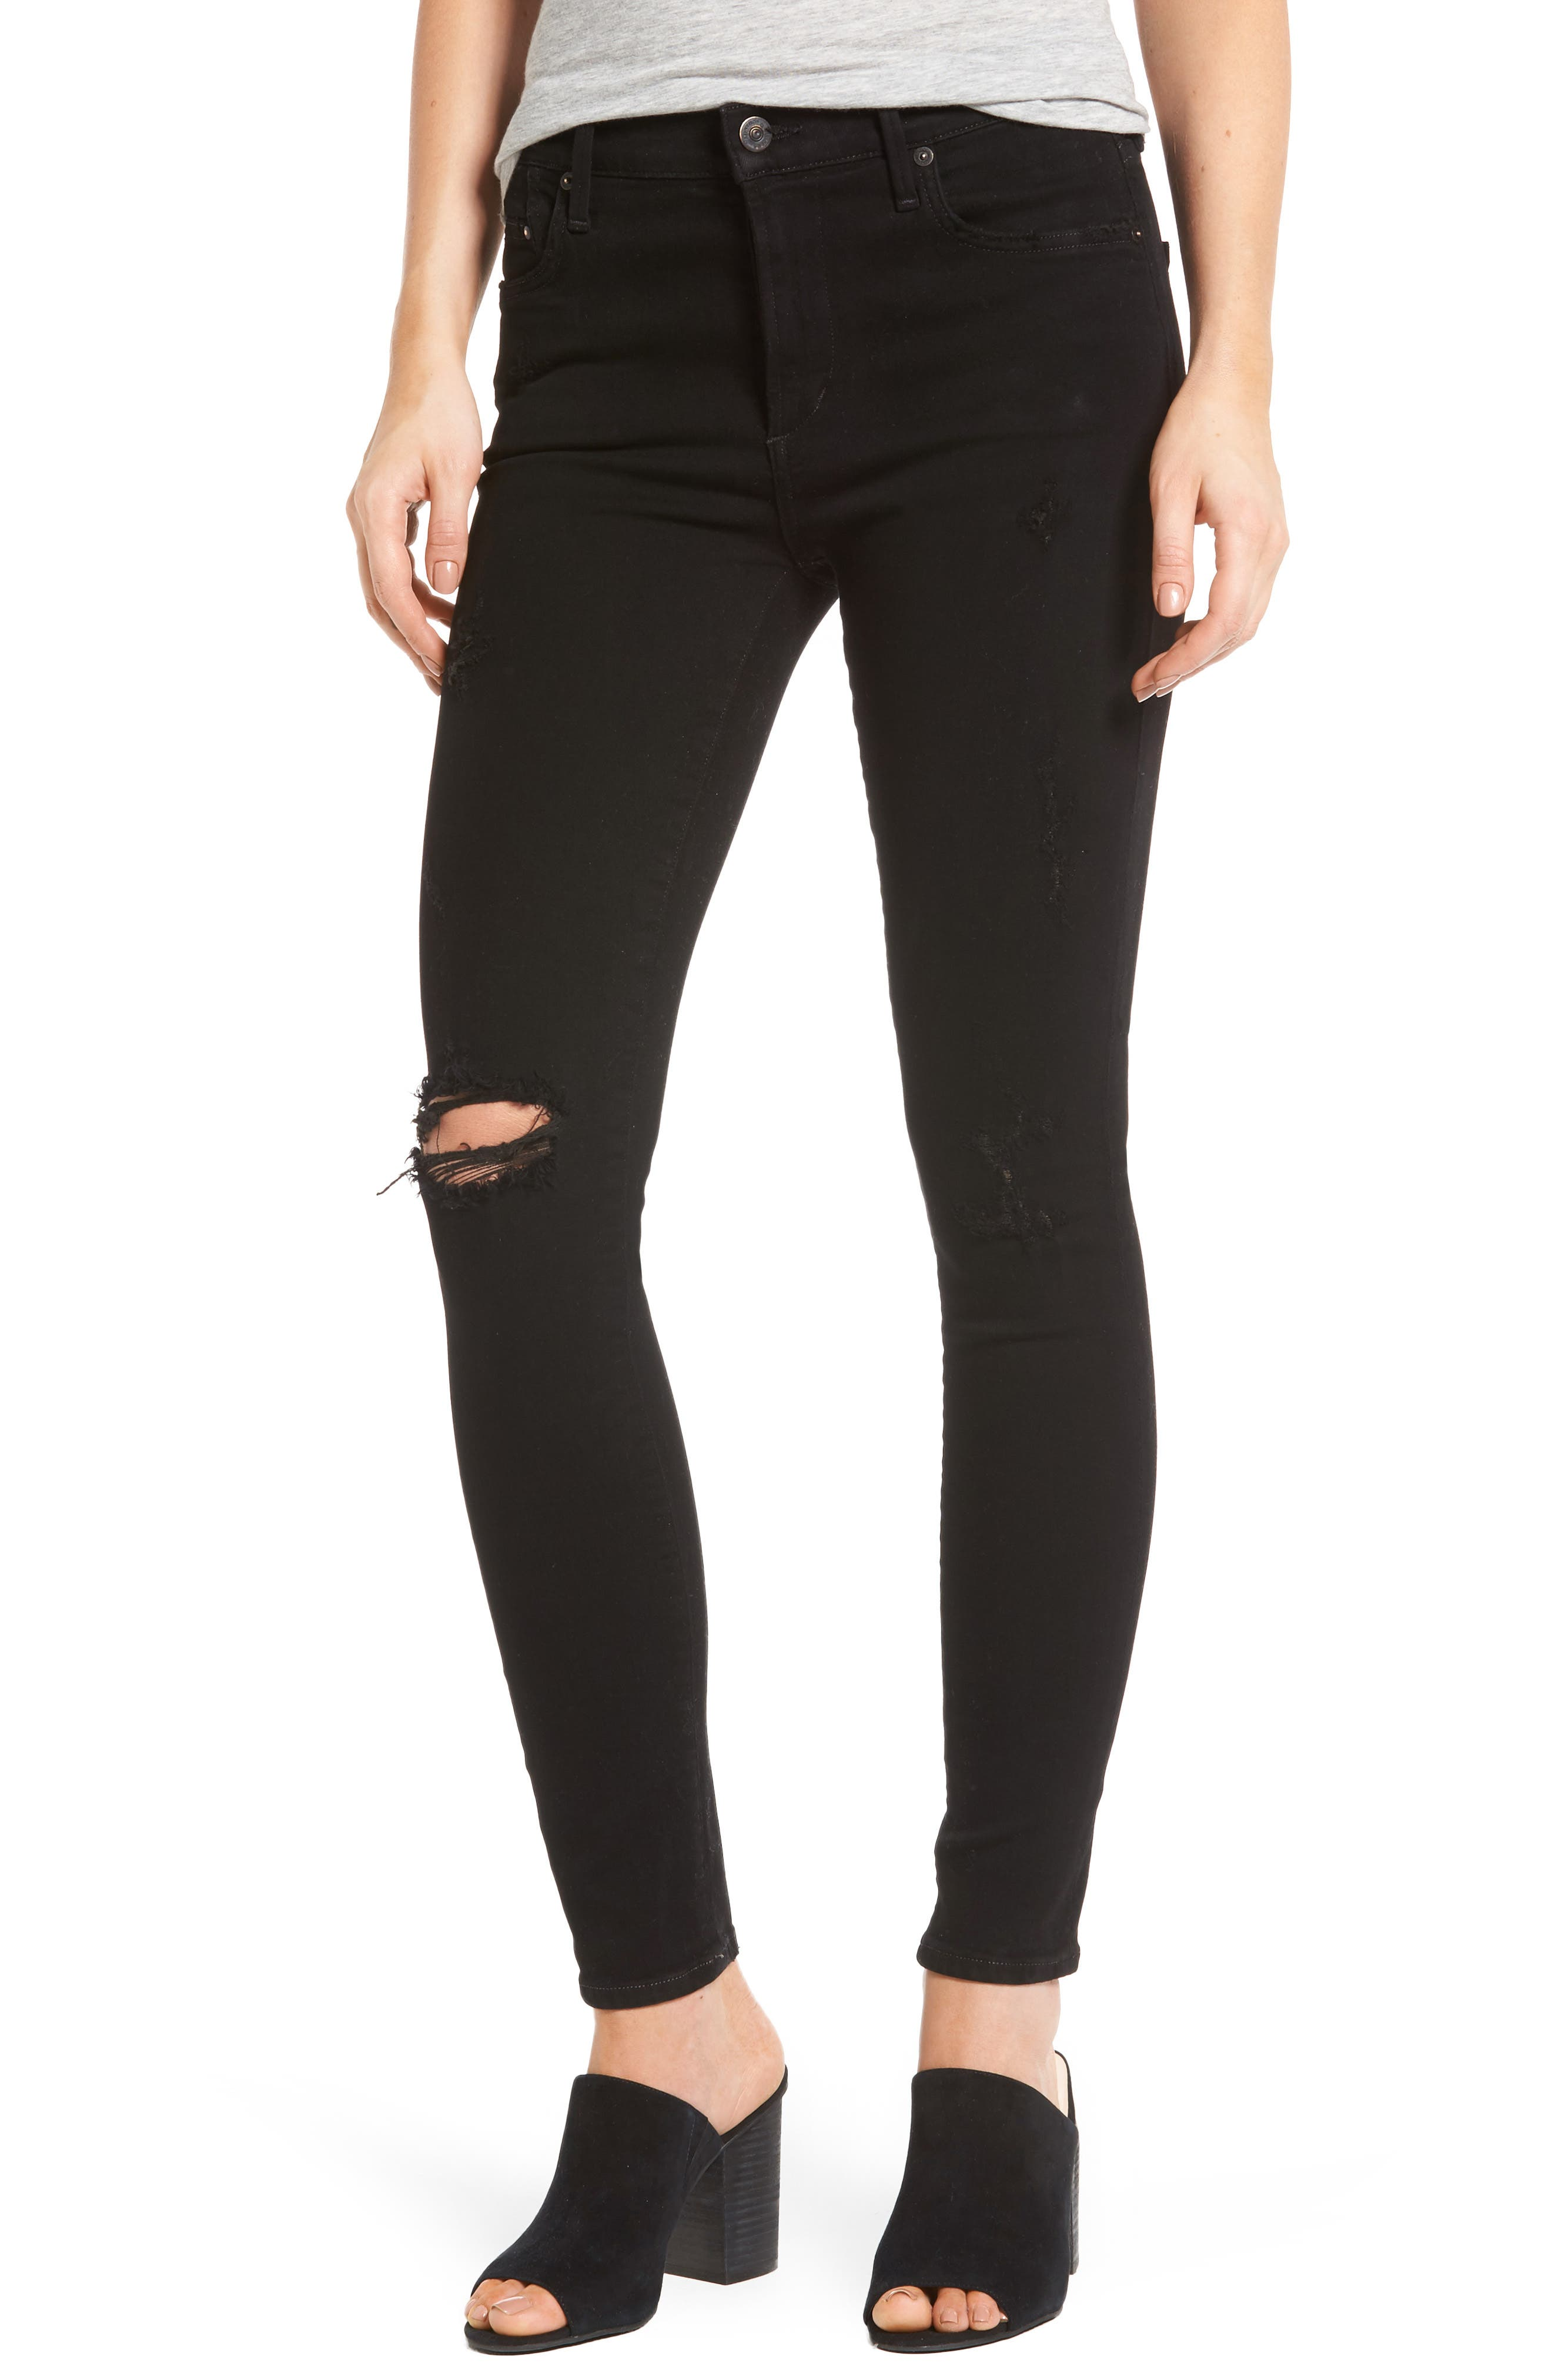 Alternate Image 1 Selected - Citizens of Humanity Rocket High Waist Skinny Jeans (Black Echoes)